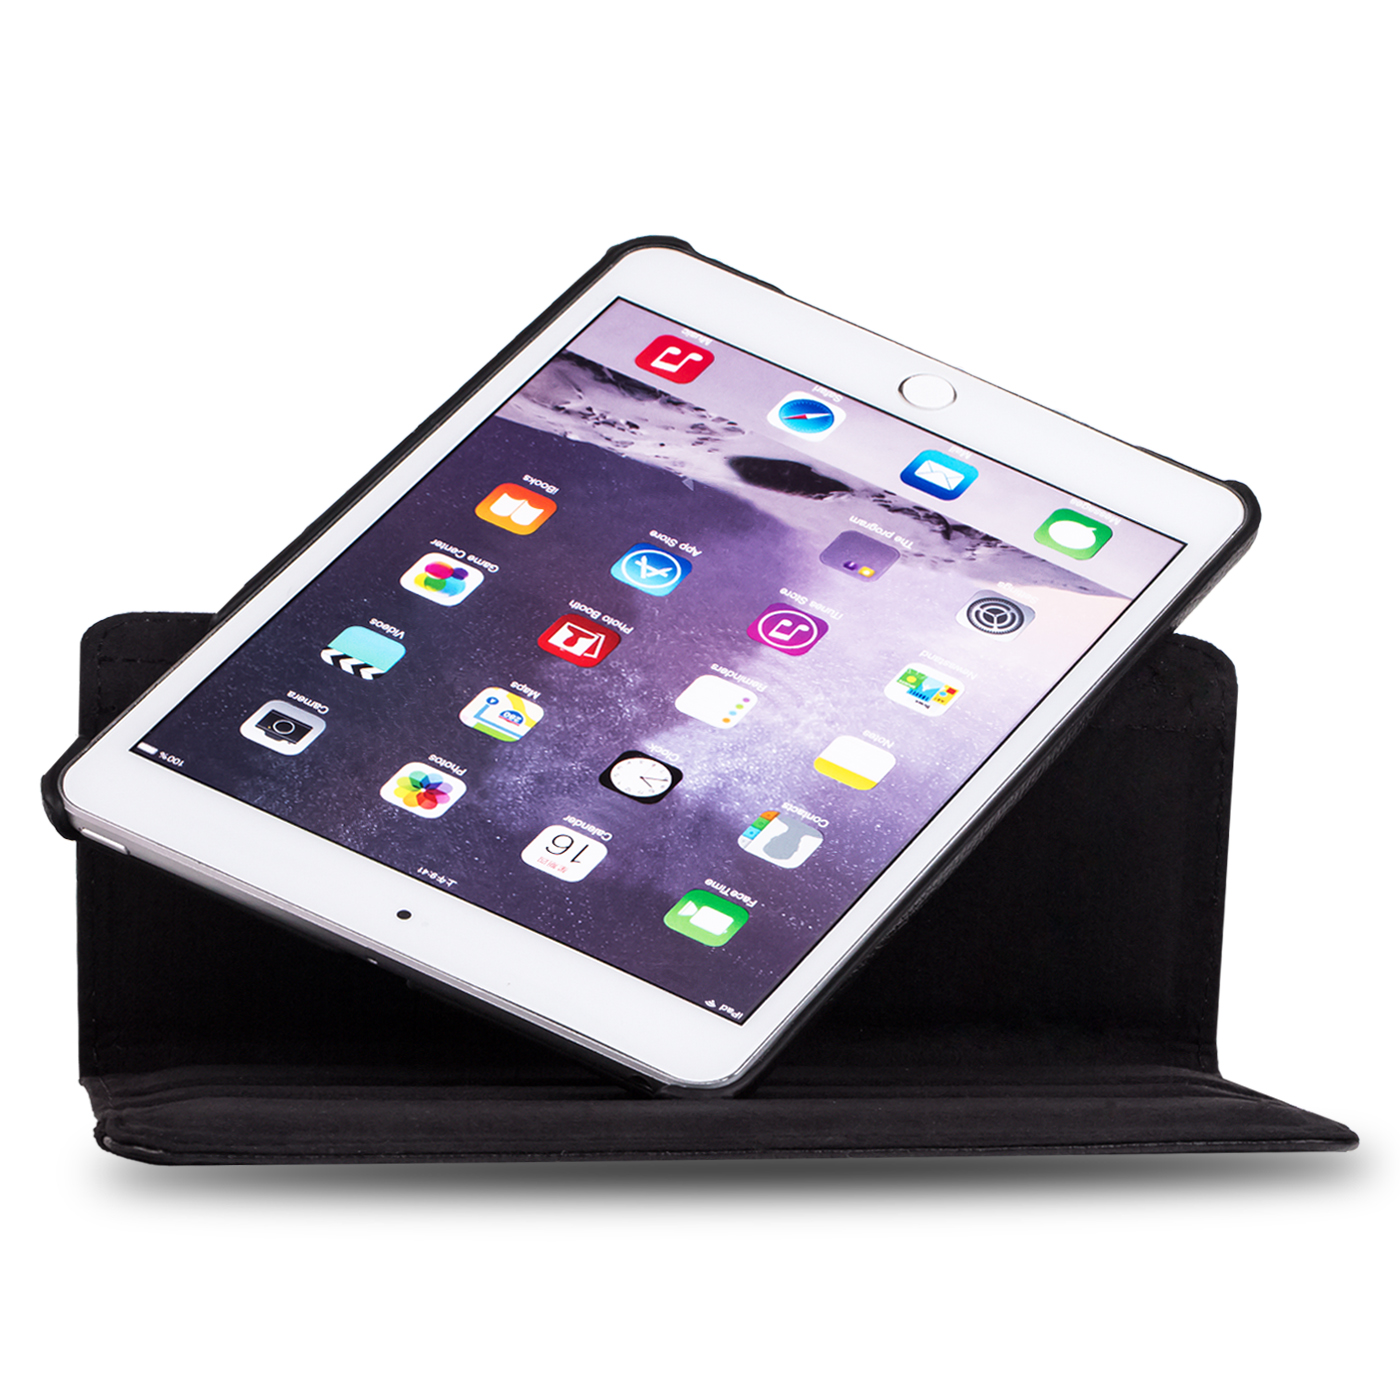 apple ipad air tablet tasche schutz h lle ipad 5 360 grad. Black Bedroom Furniture Sets. Home Design Ideas